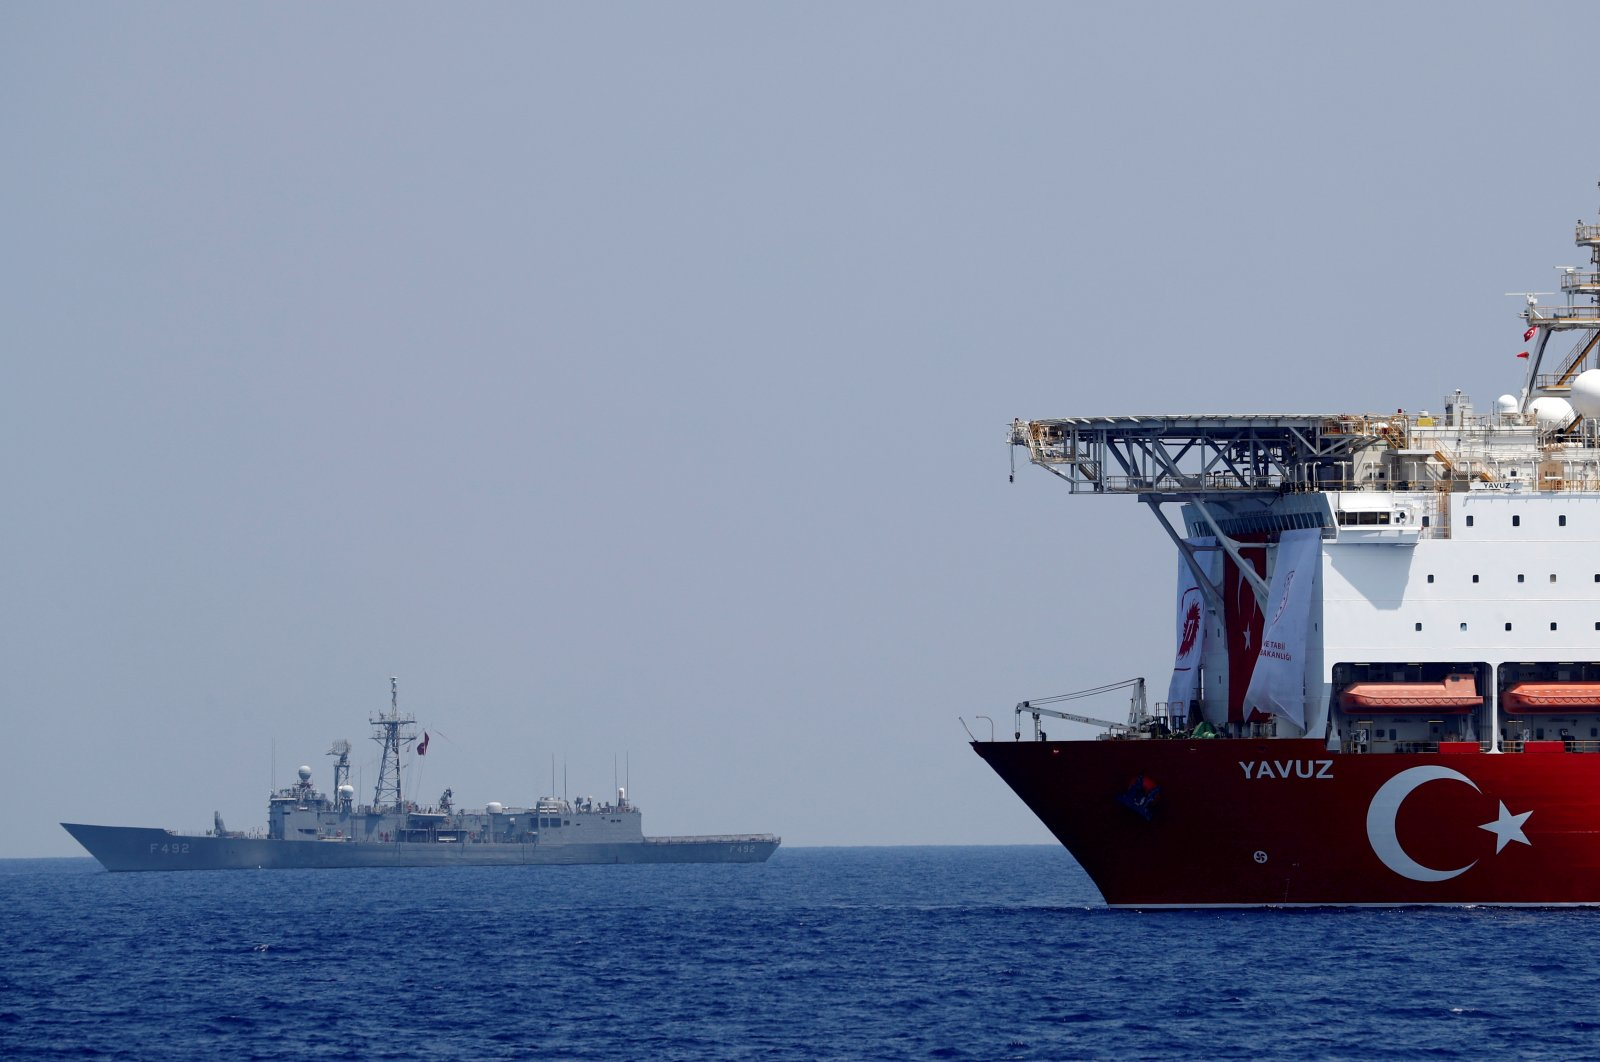 The Turkish drilling vessel Yavuz being escorted by a Turkish navy frigate in the Eastern Mediterranean, Aug. 6, 2019. (REUTERS Photo)